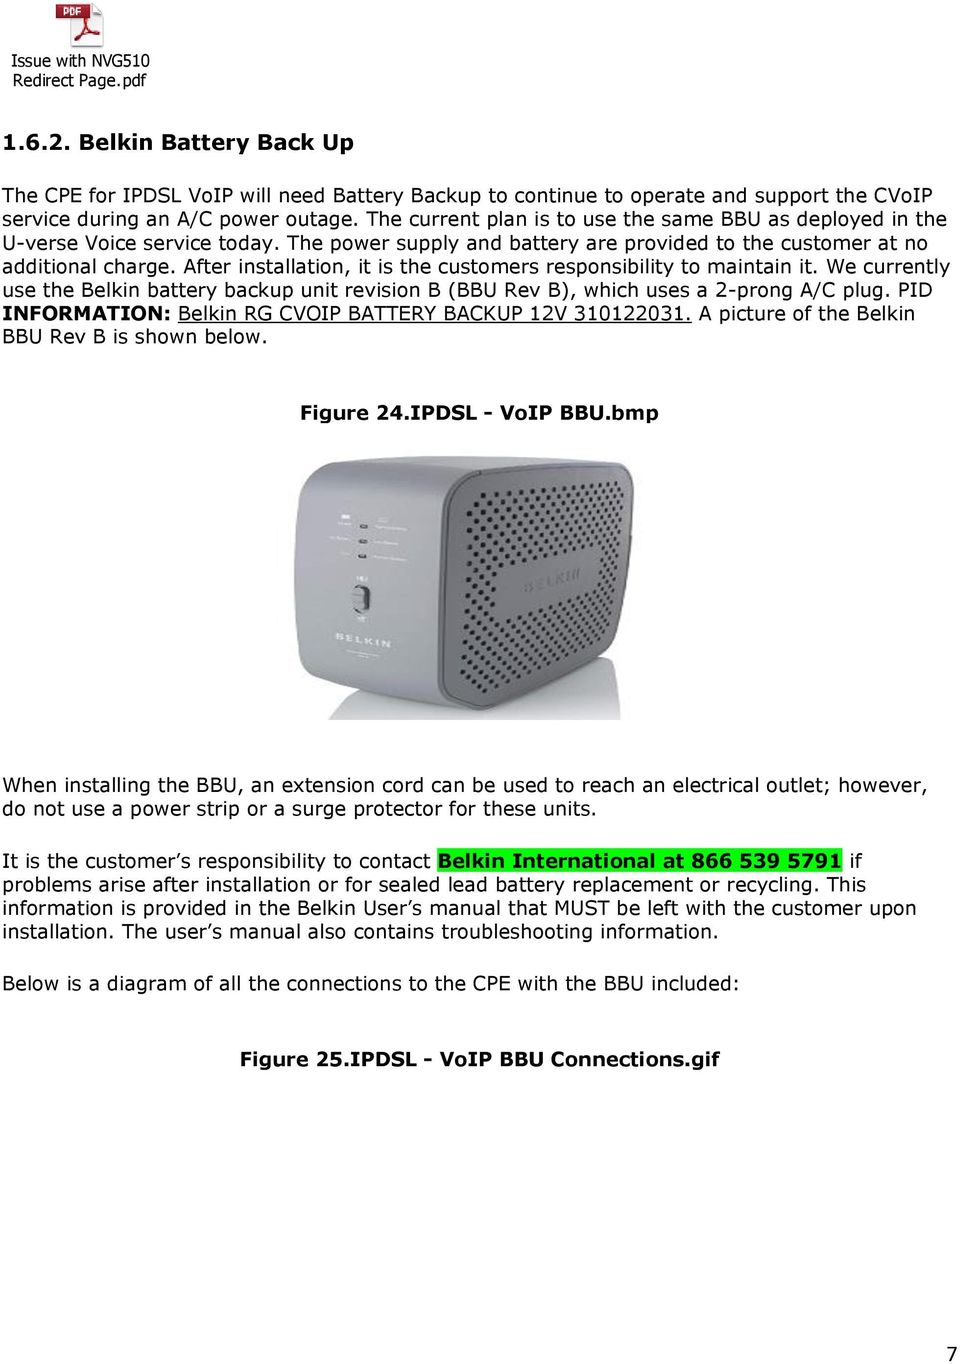 Voip q&a: edgemarc 250w default password.